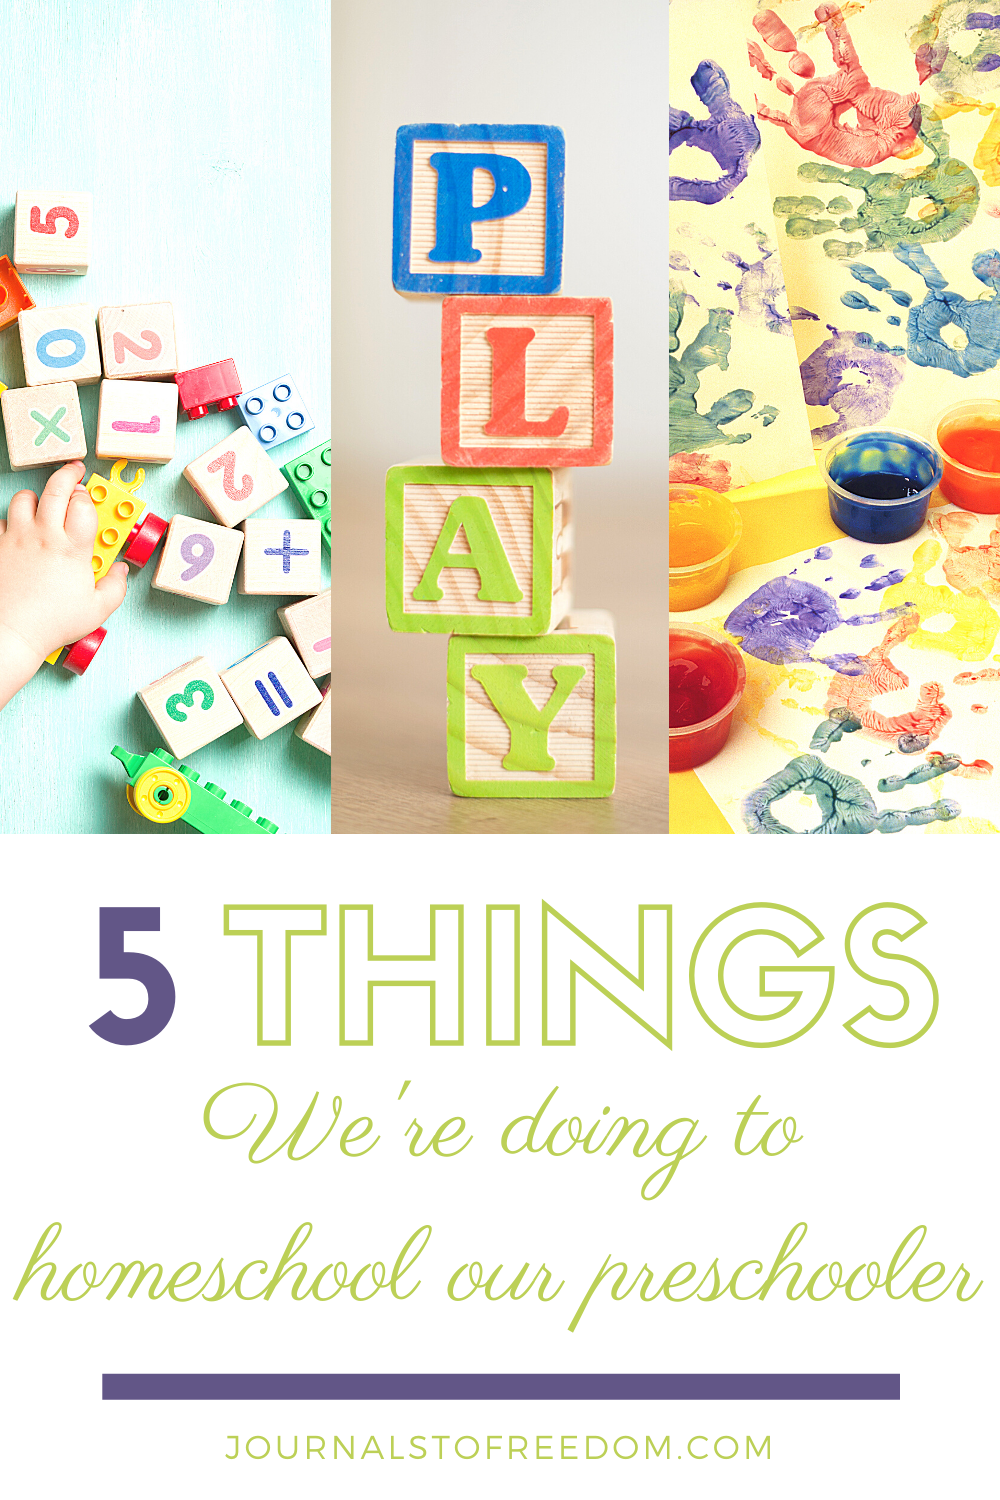 5 Things We Are Doing To Homeschool Our Preschooler